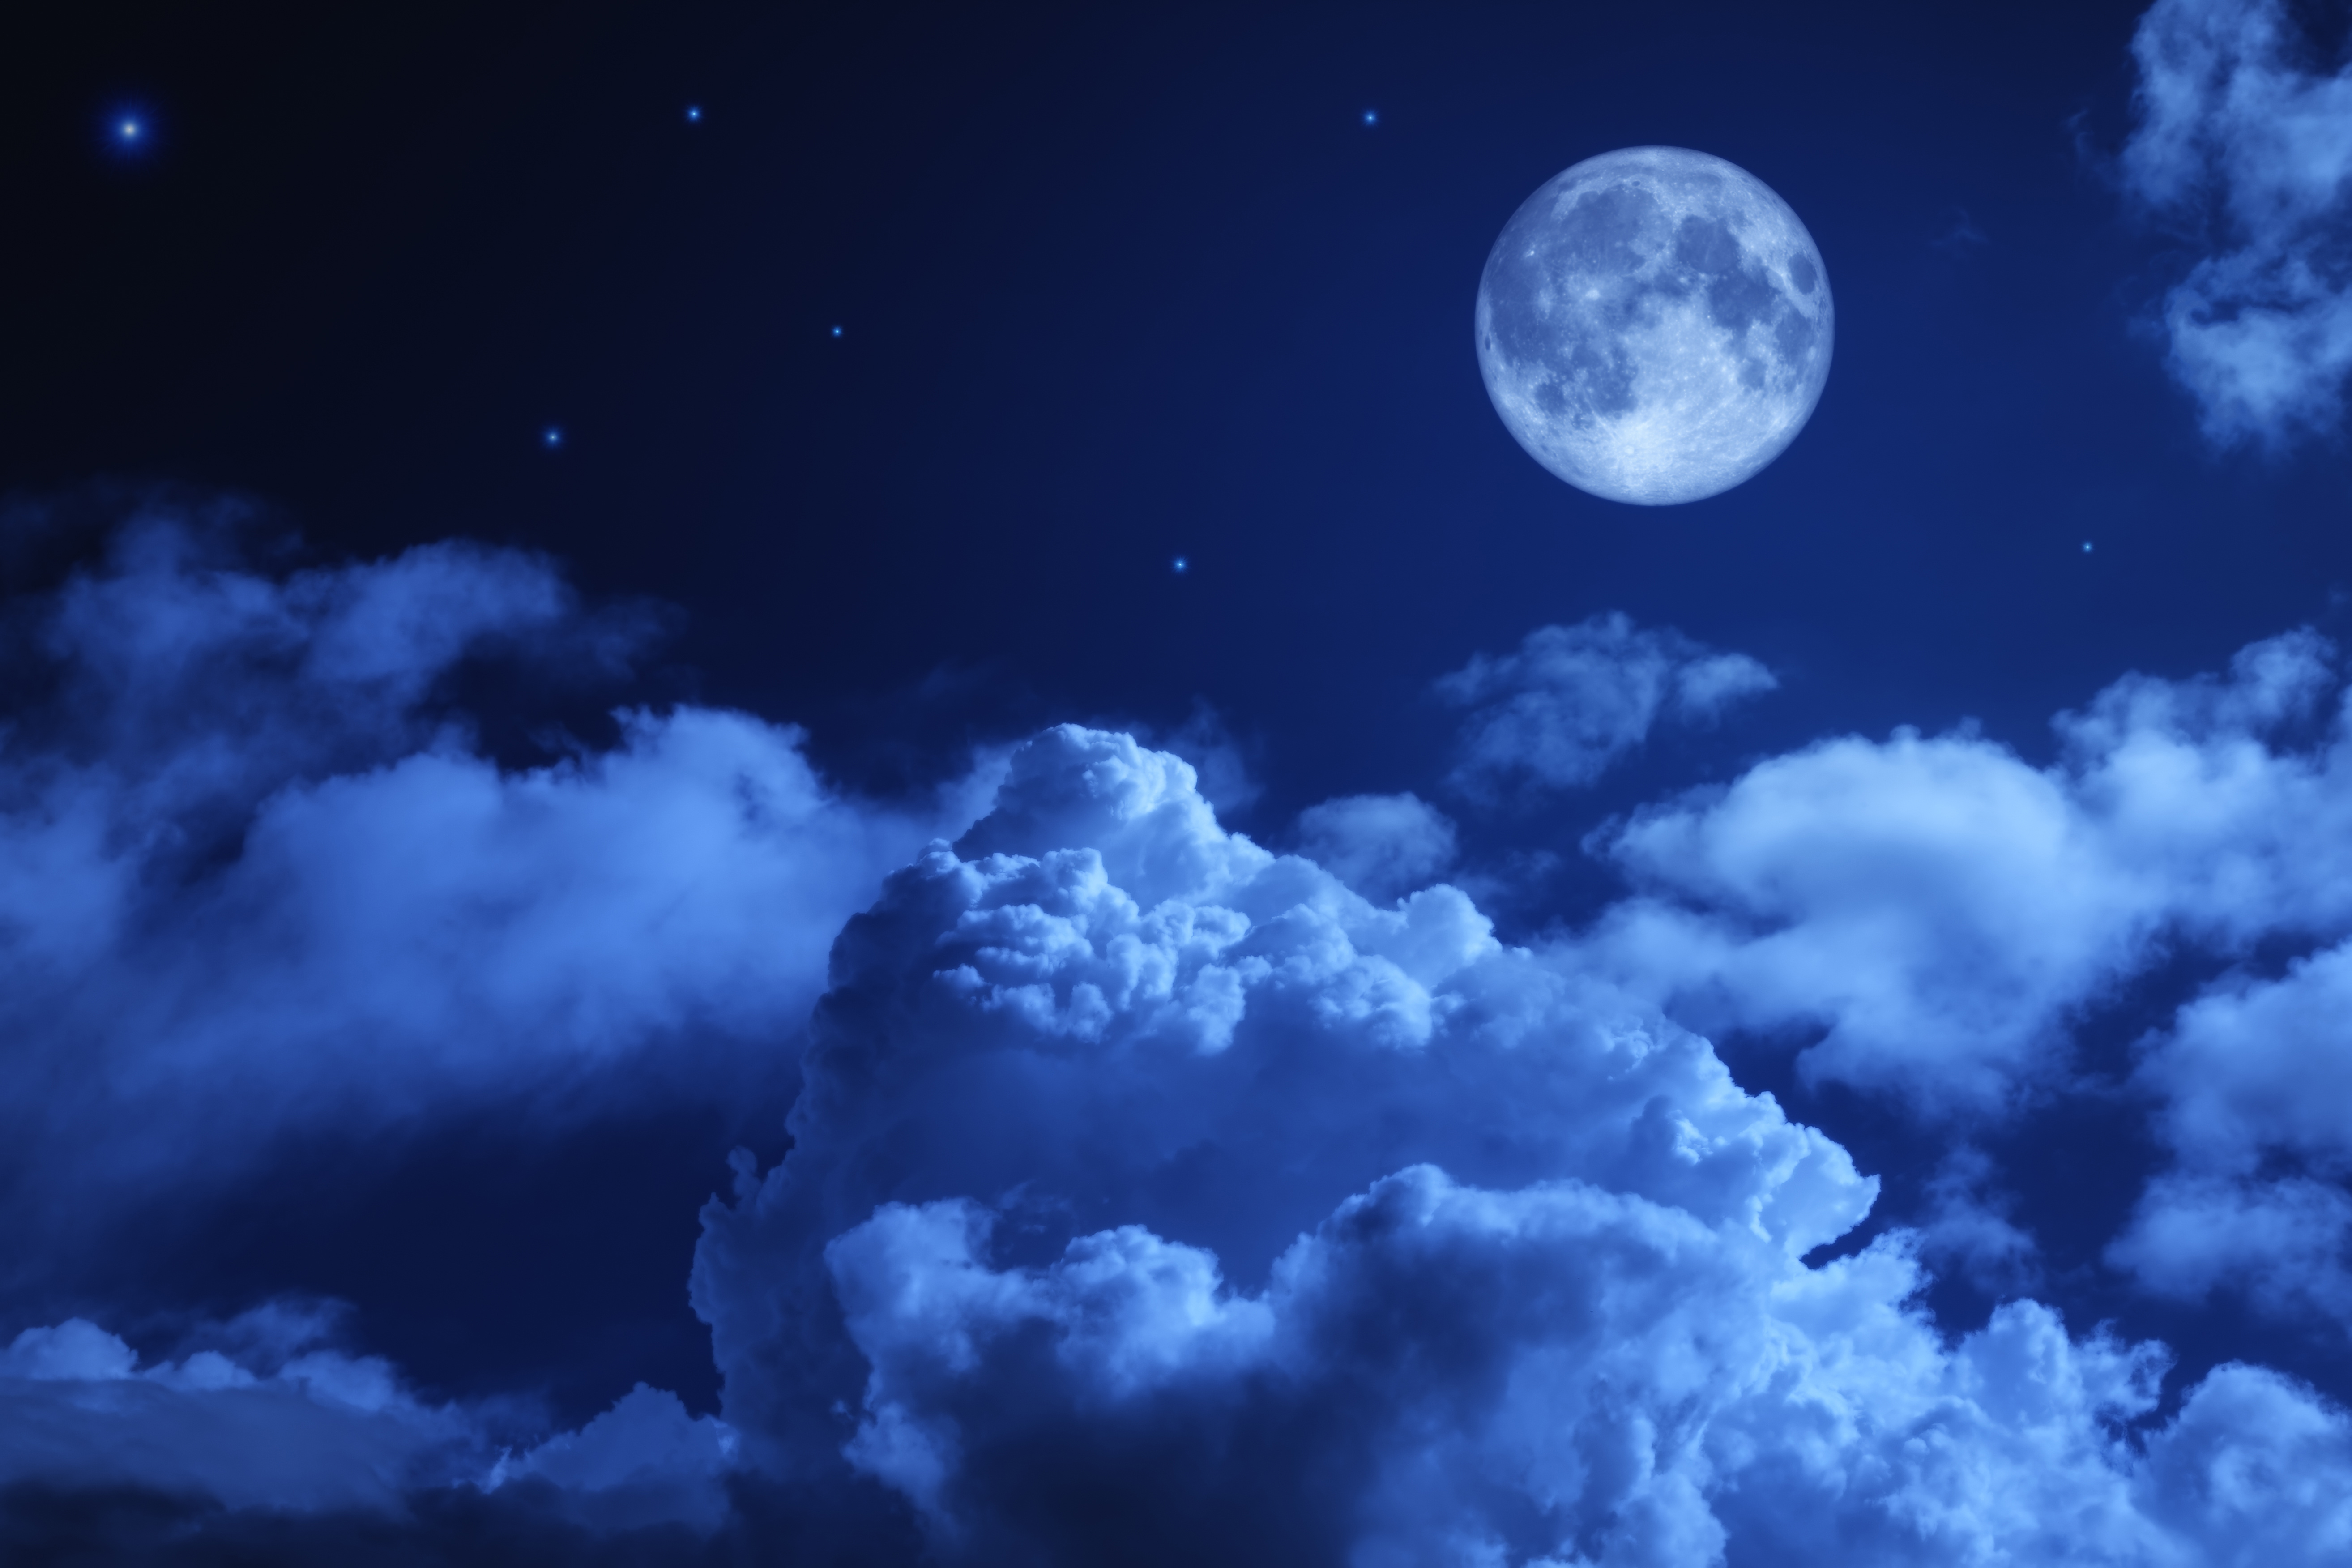 Wallpaper Clouds Blue Sky Hd 5k Nature 3492: Moon Night Sky Clouds 5k, HD Nature, 4k Wallpapers, Images